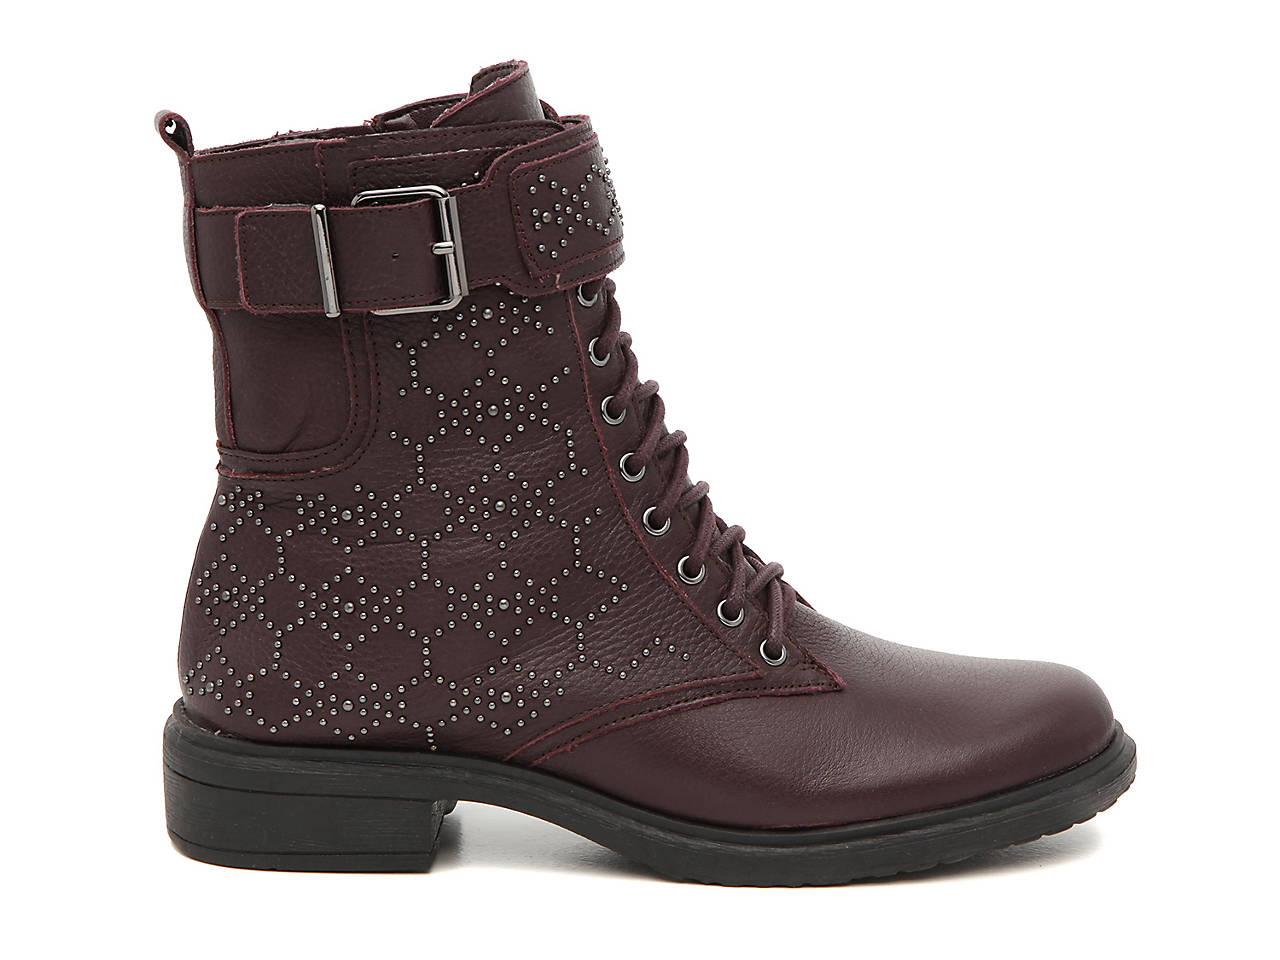 Vince Camuto Womens Tanowie